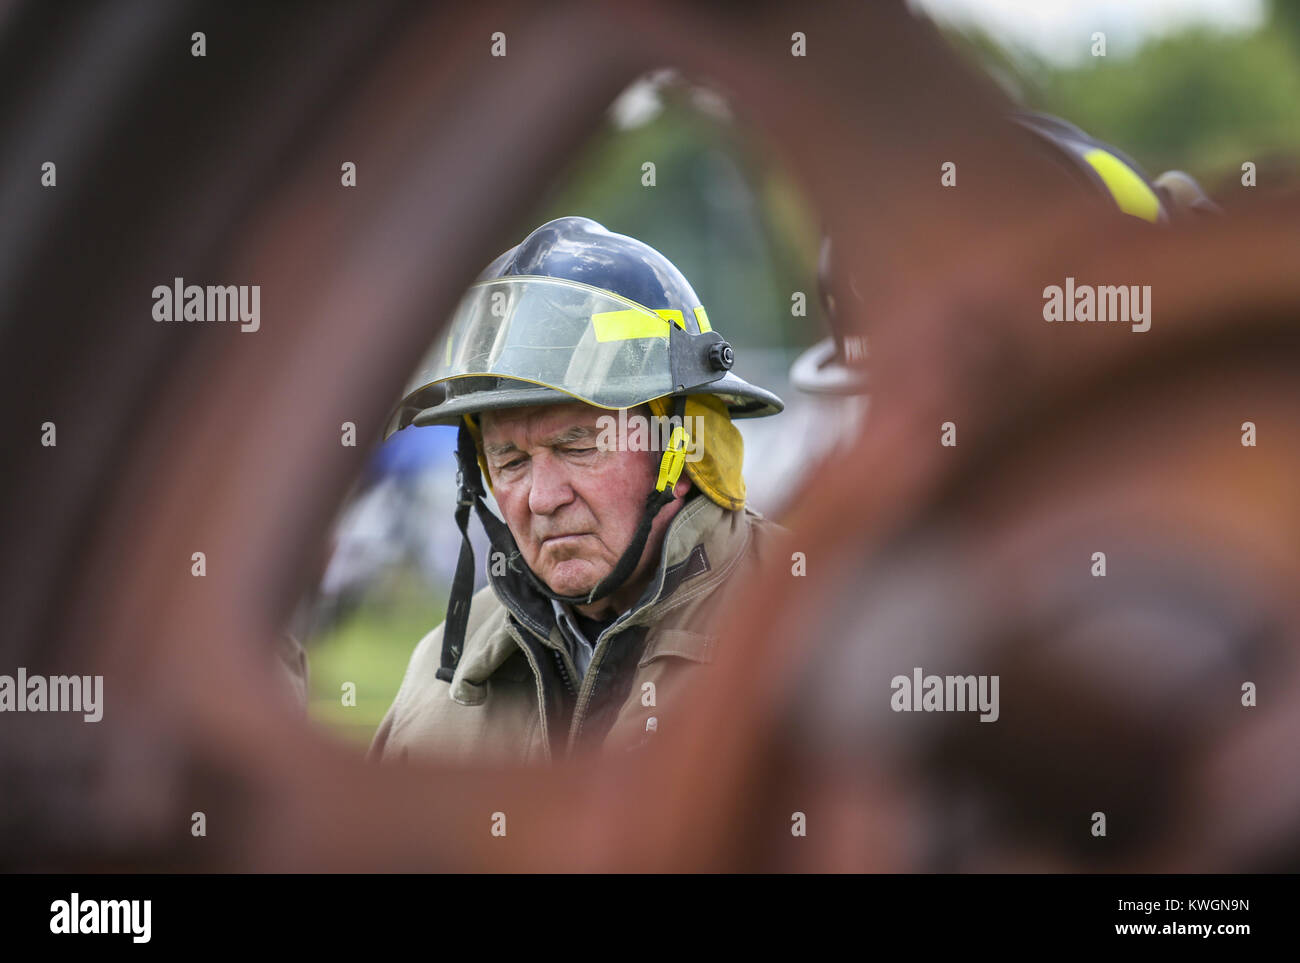 Davenport, Iowa, USA. 6th Aug, 2017. U.S. Secretary of Agriculture Sonny Perdue watches as volunteer firefighters - Stock Image